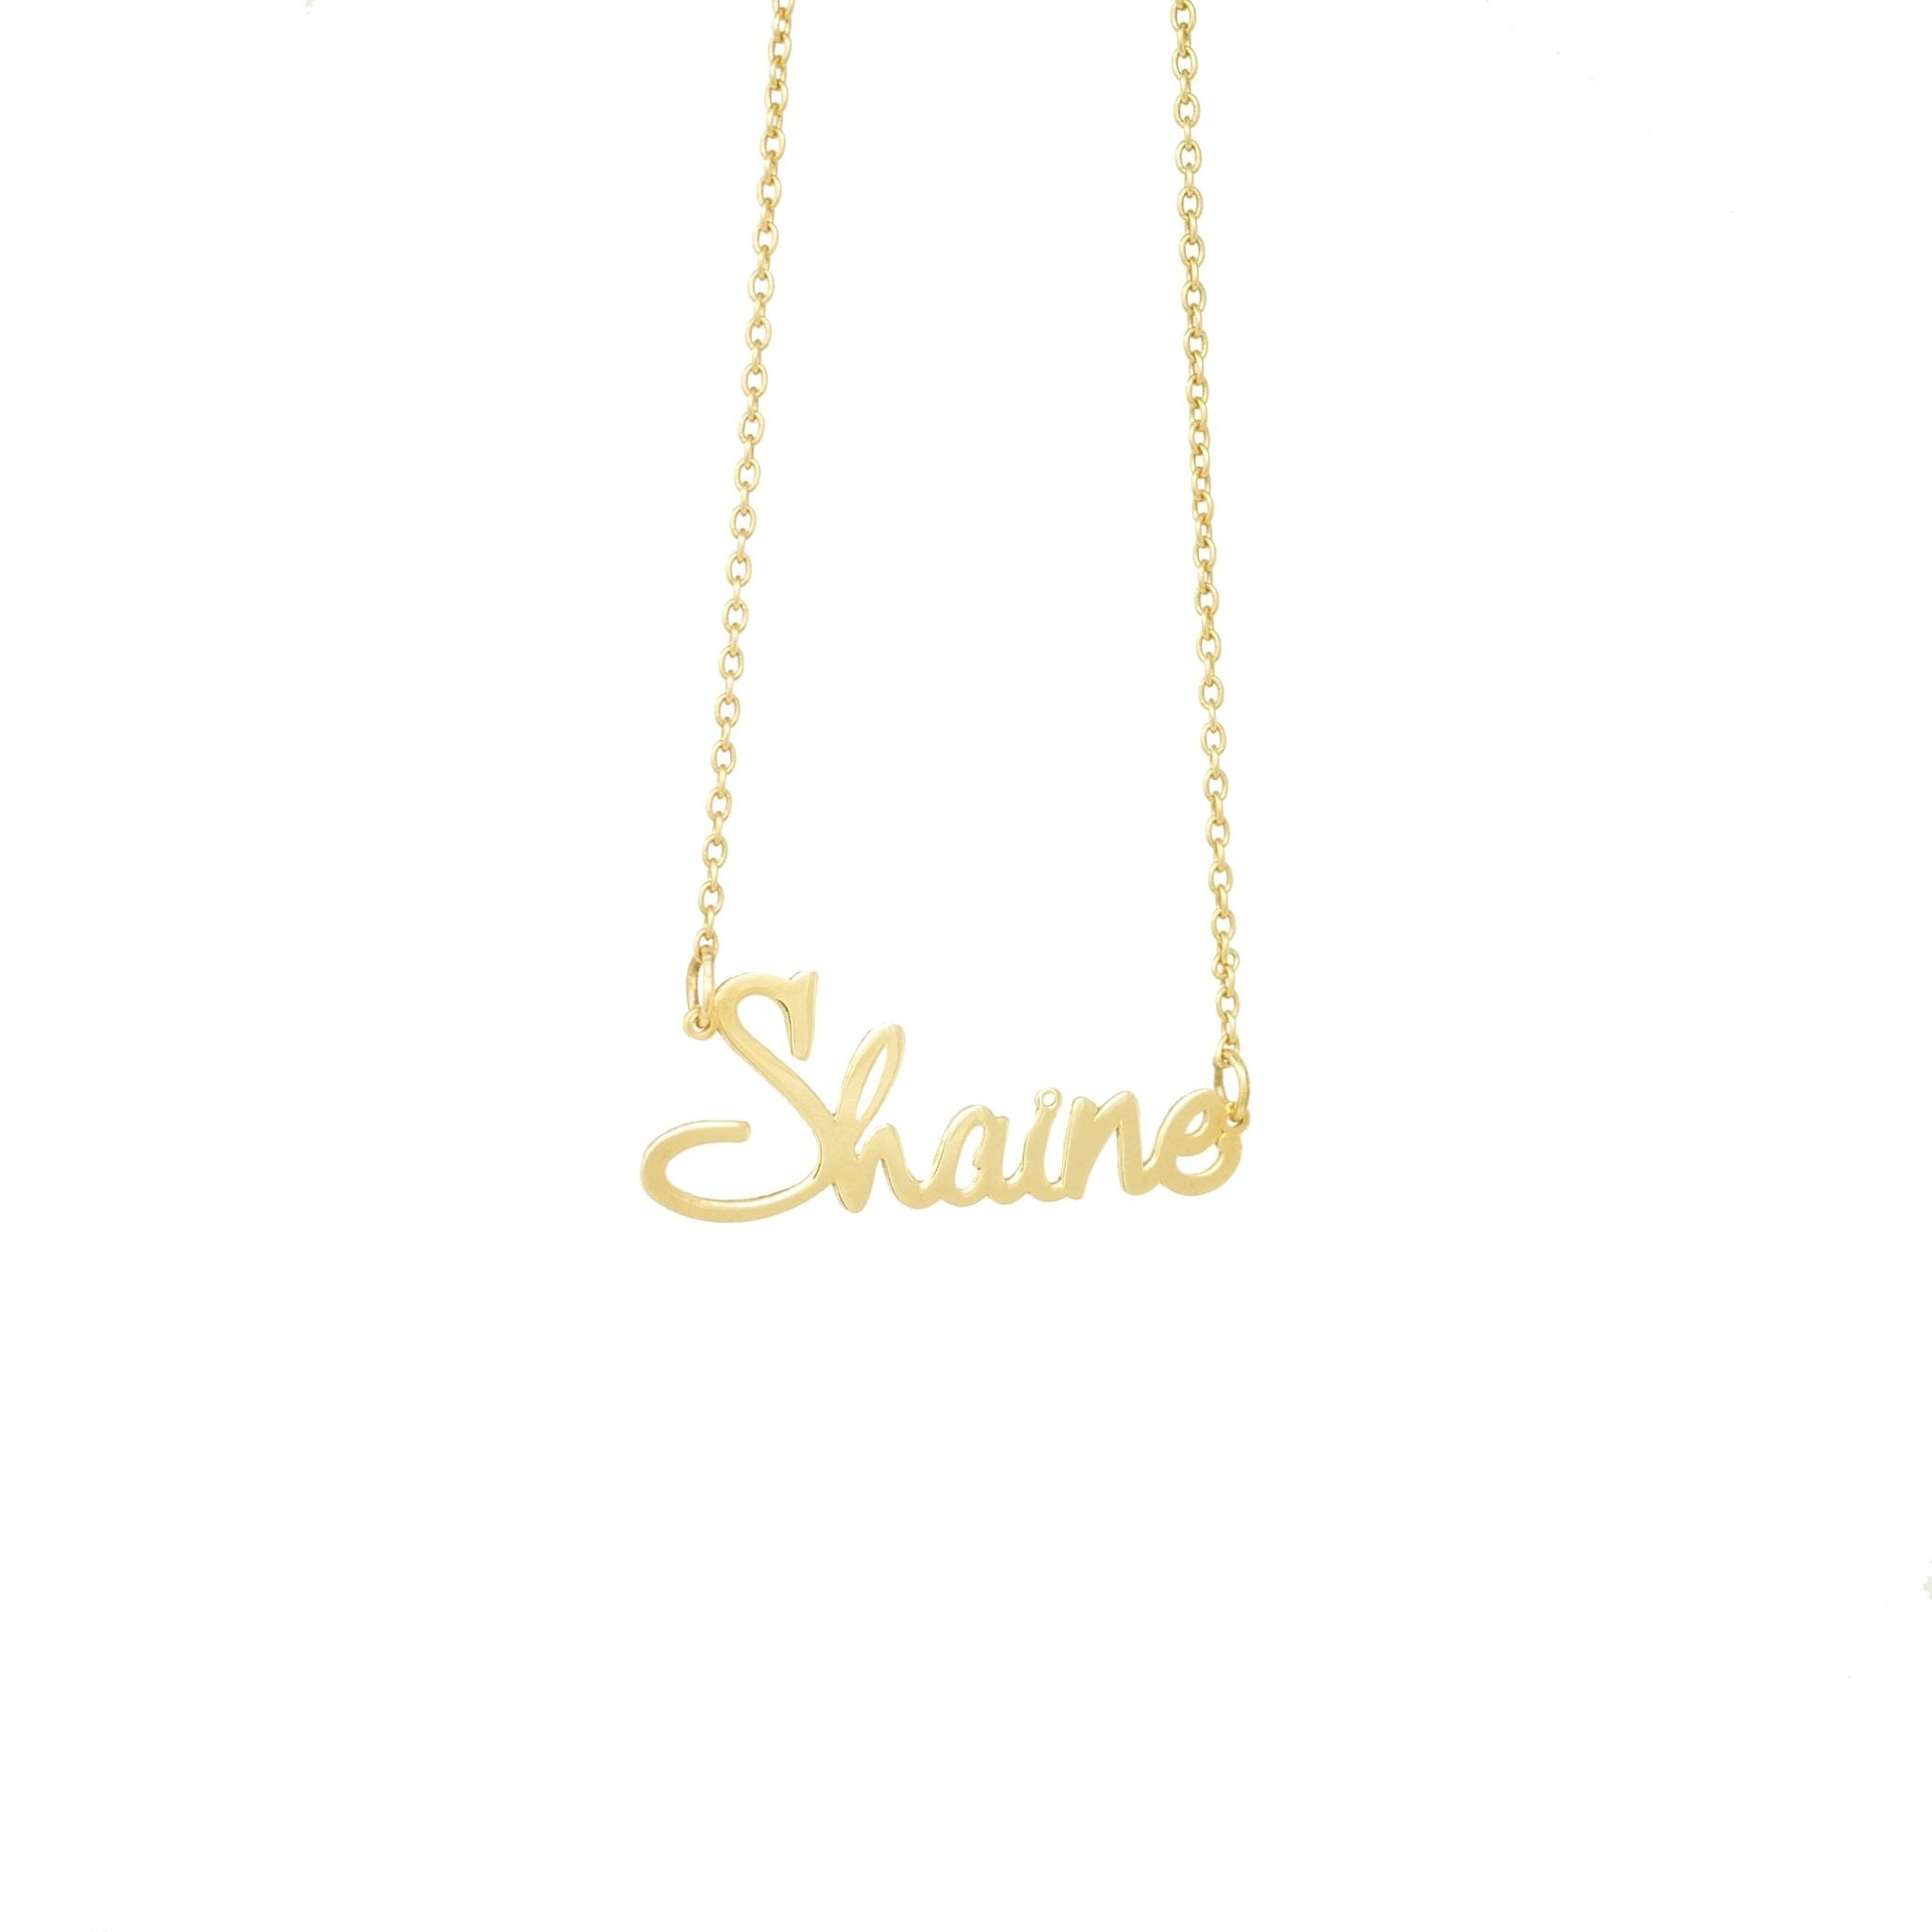 Cursive Name Necklace - Mayblu